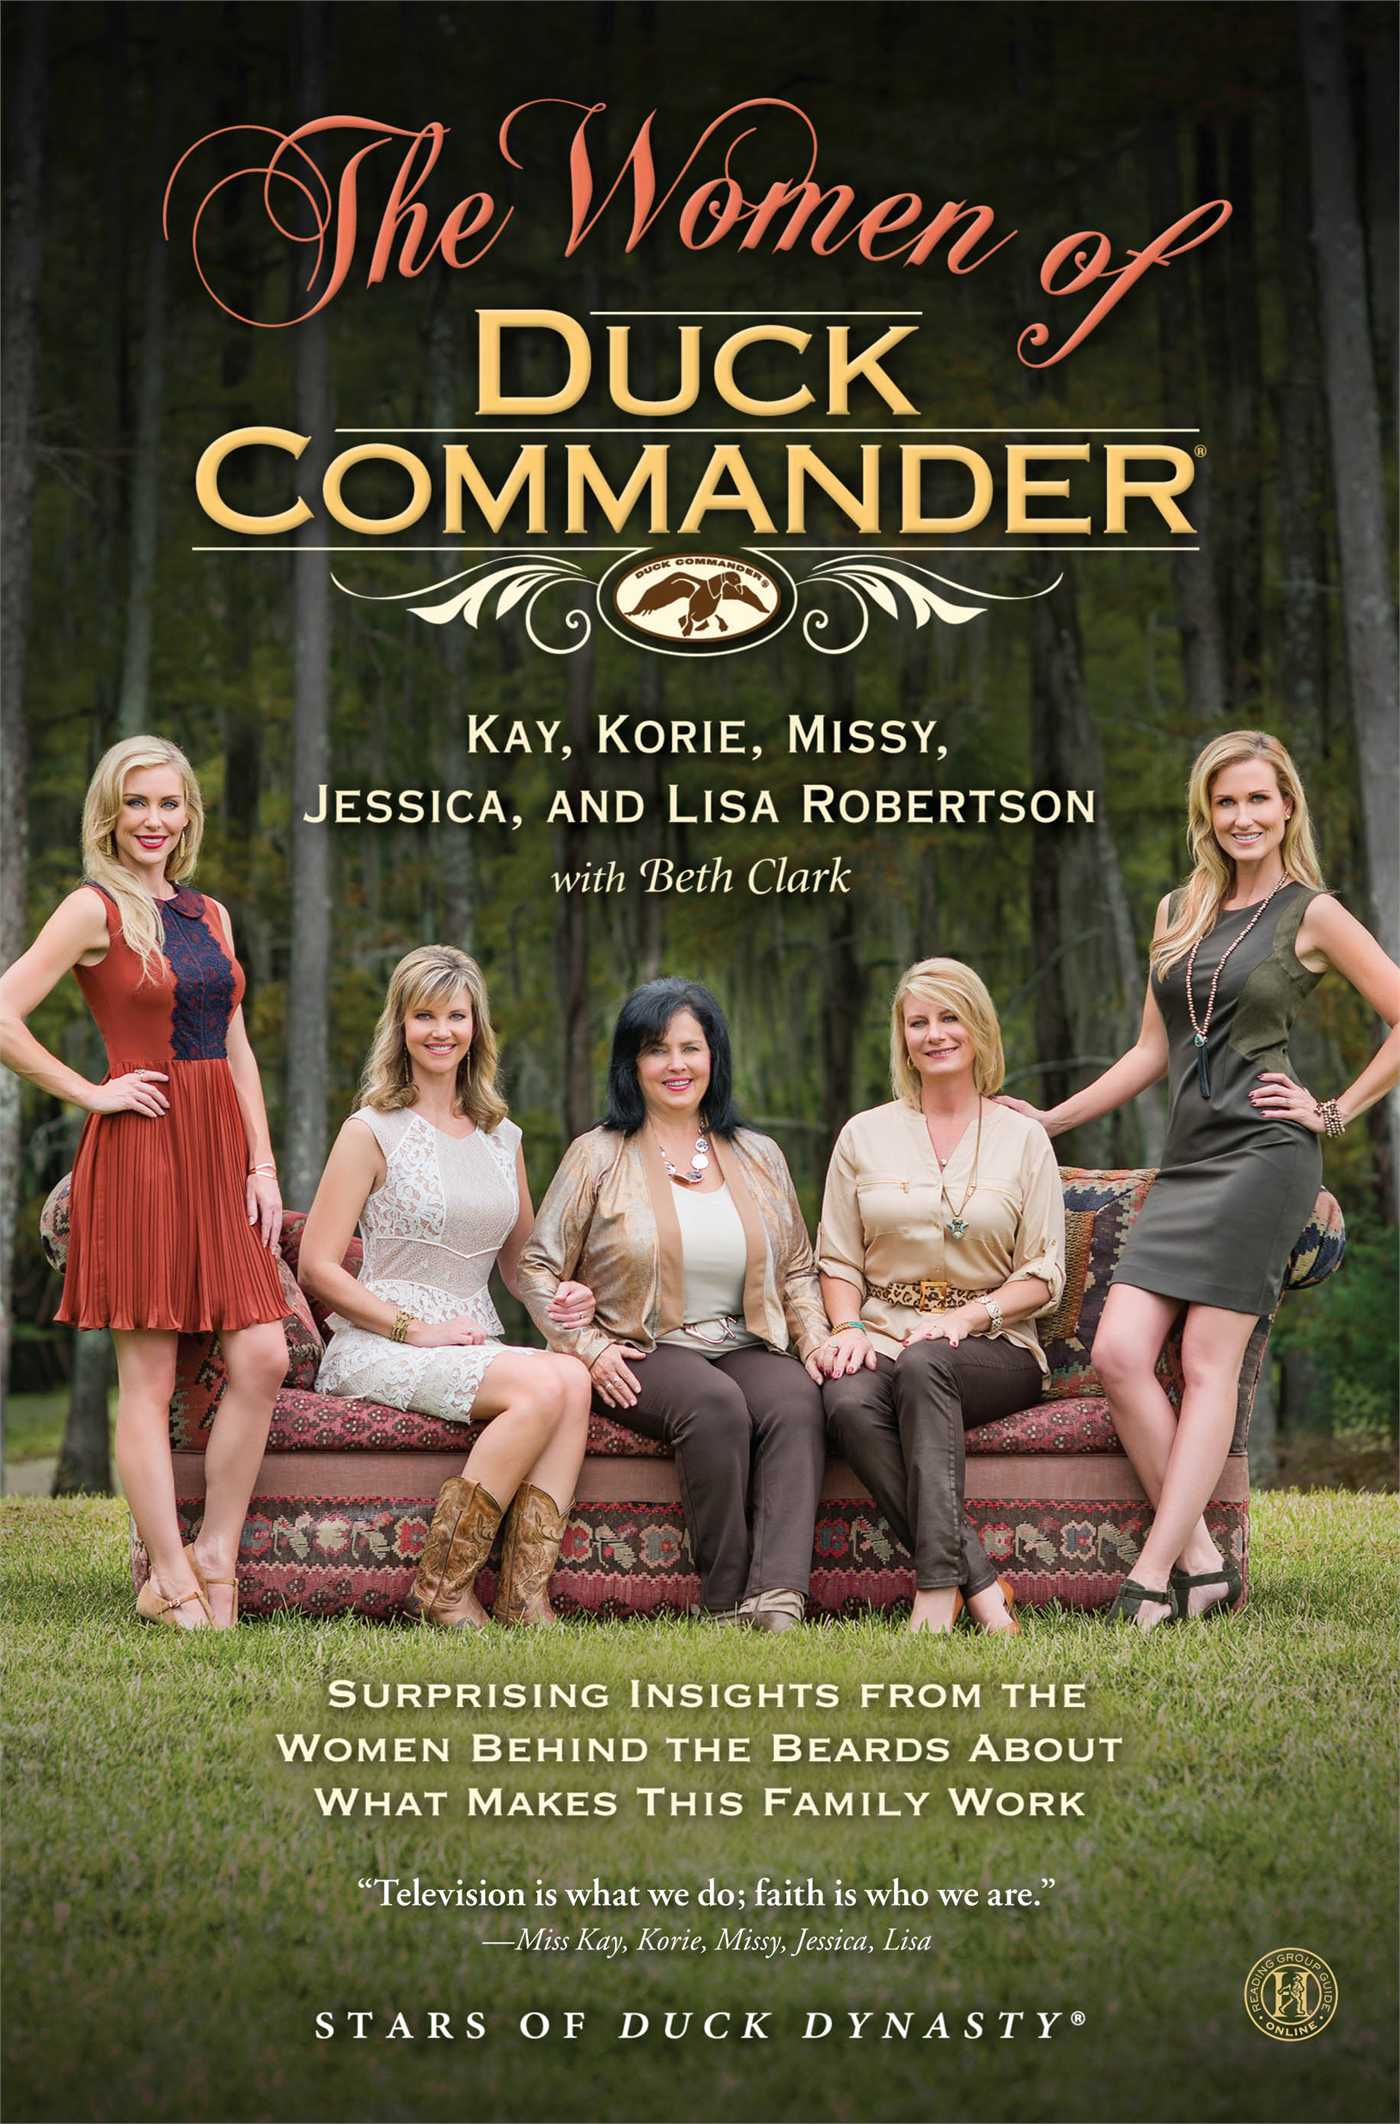 Women-of-duck-commander-9781476763309_hr